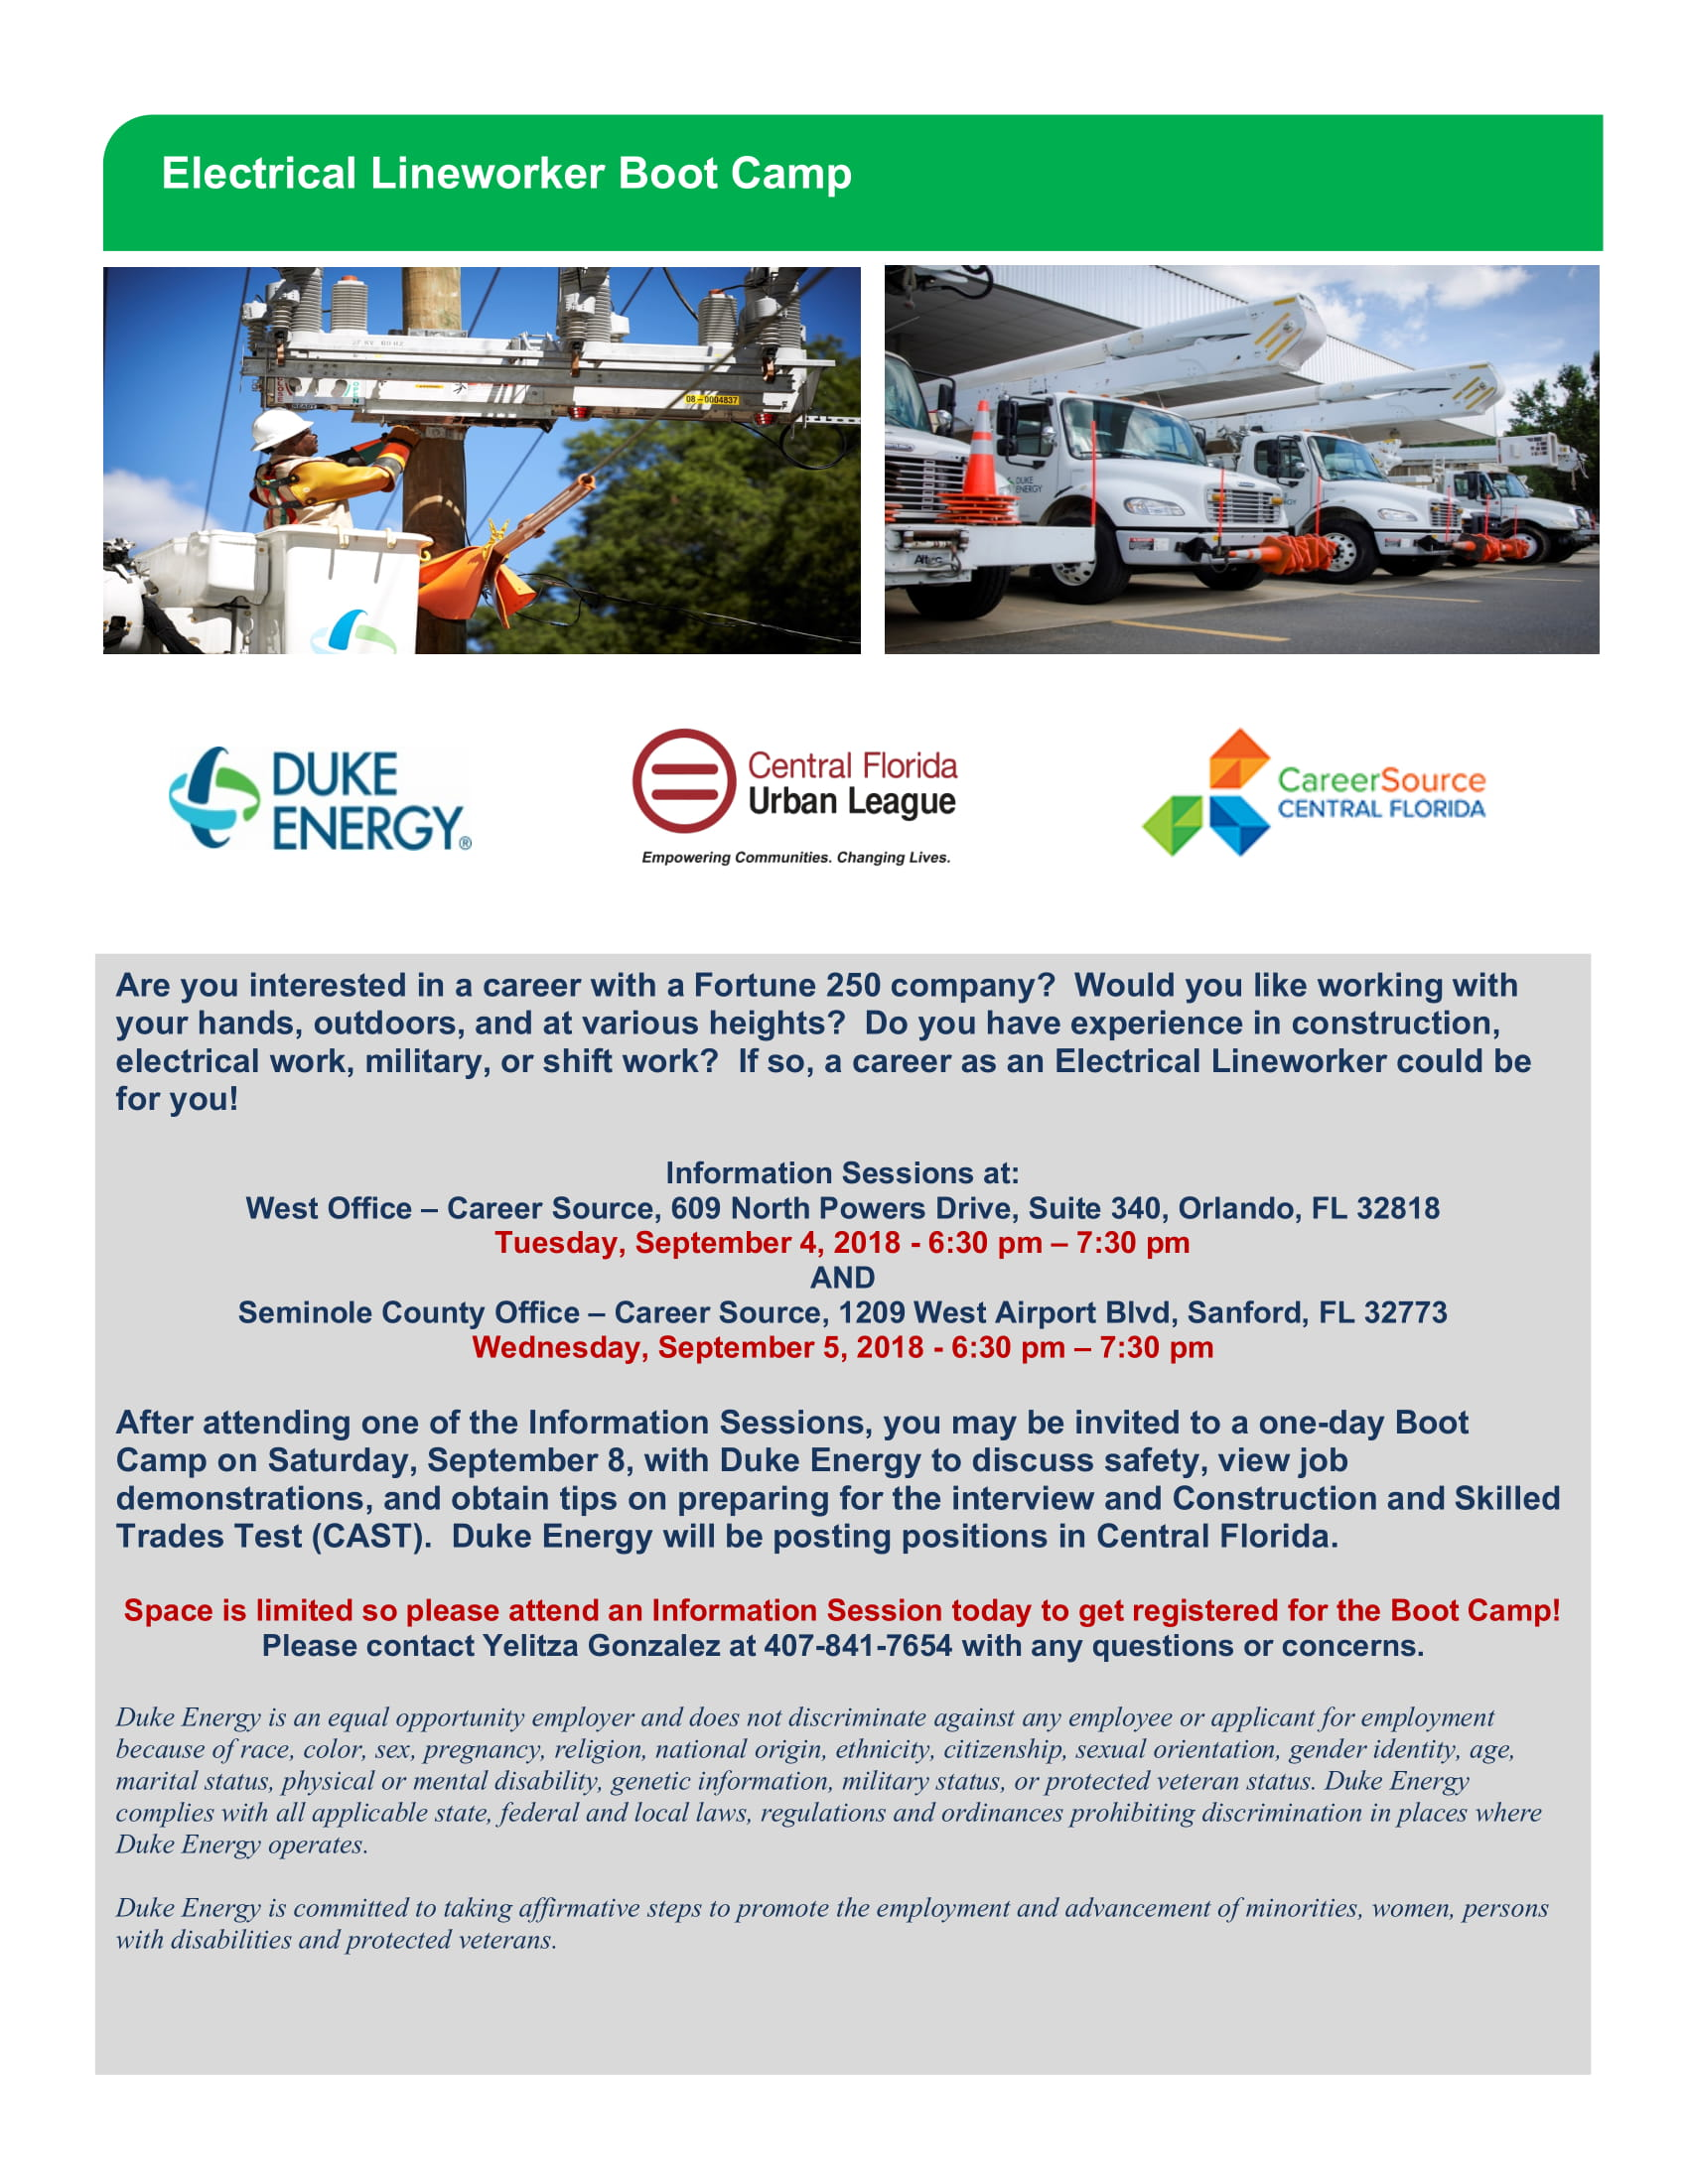 Lineworker_Boot_Camp_Flyer_rv2018-Orlando_2c_Winter_Garden-1.jpg